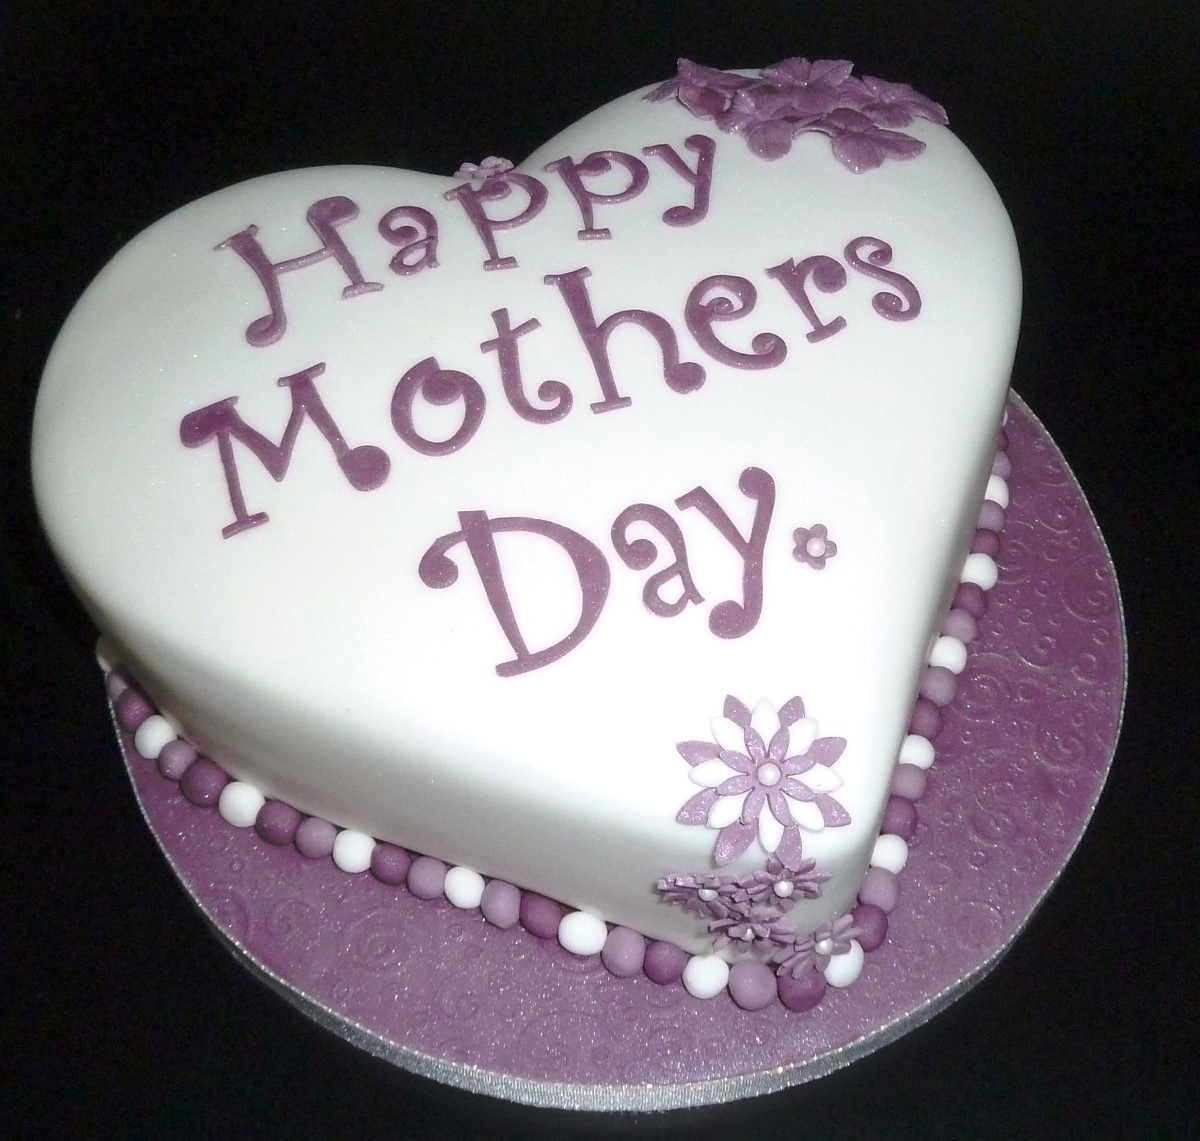 Cake Decoration Mothers Day : Happy Mother s Day Cakes Wallpapers Images Photos Pictures ...